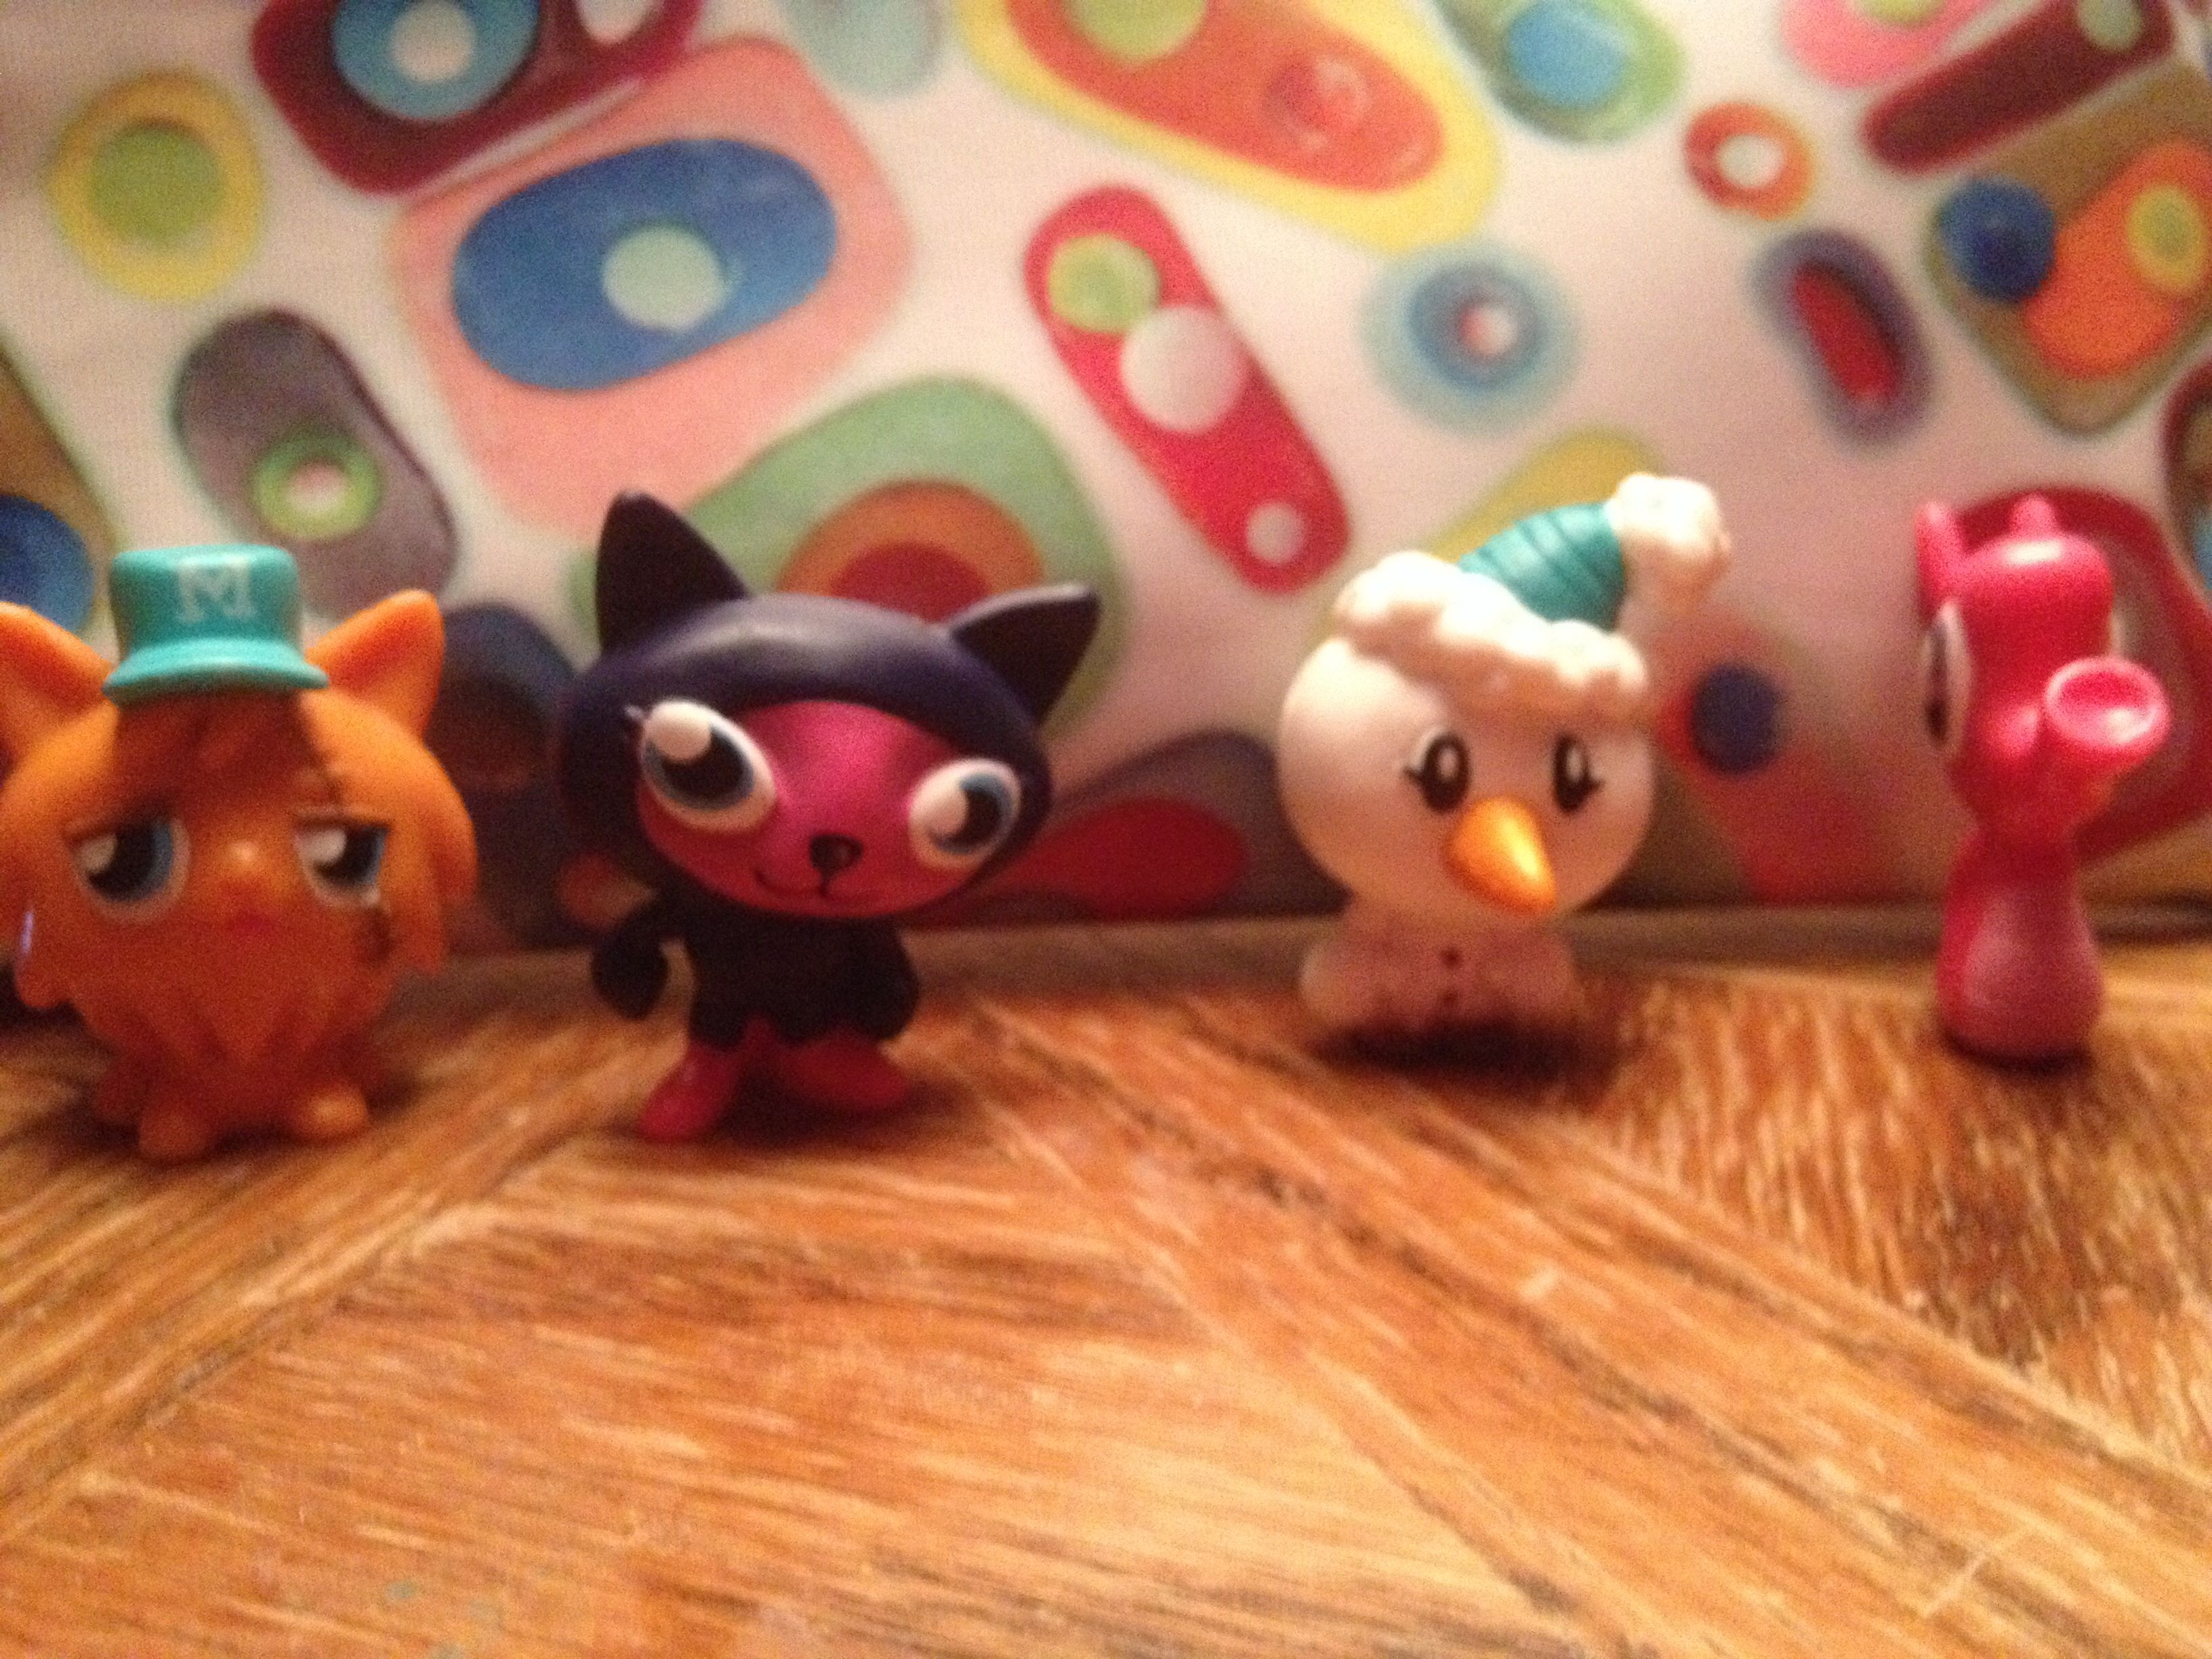 My Moshy monsters: Ginger, Snowy, Kitty and Stanley